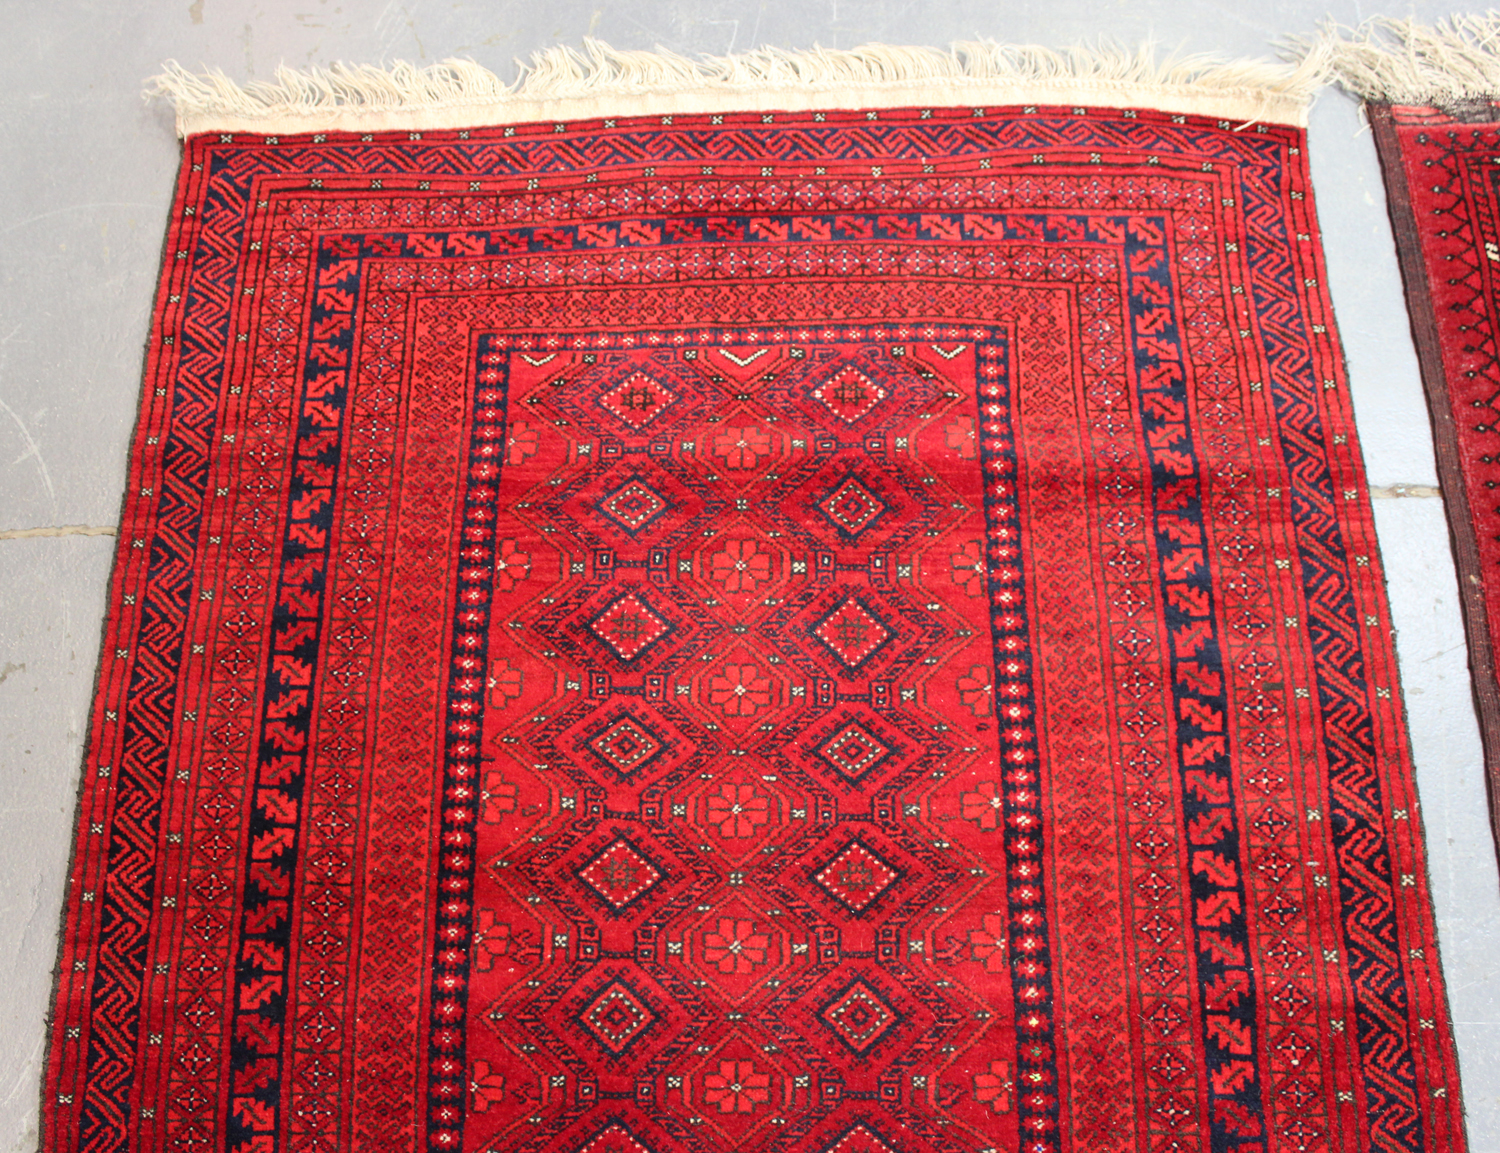 A small Afghan rug, late 20th century, 160cm x 102cm, together with another similar Afghan rug, - Image 4 of 4